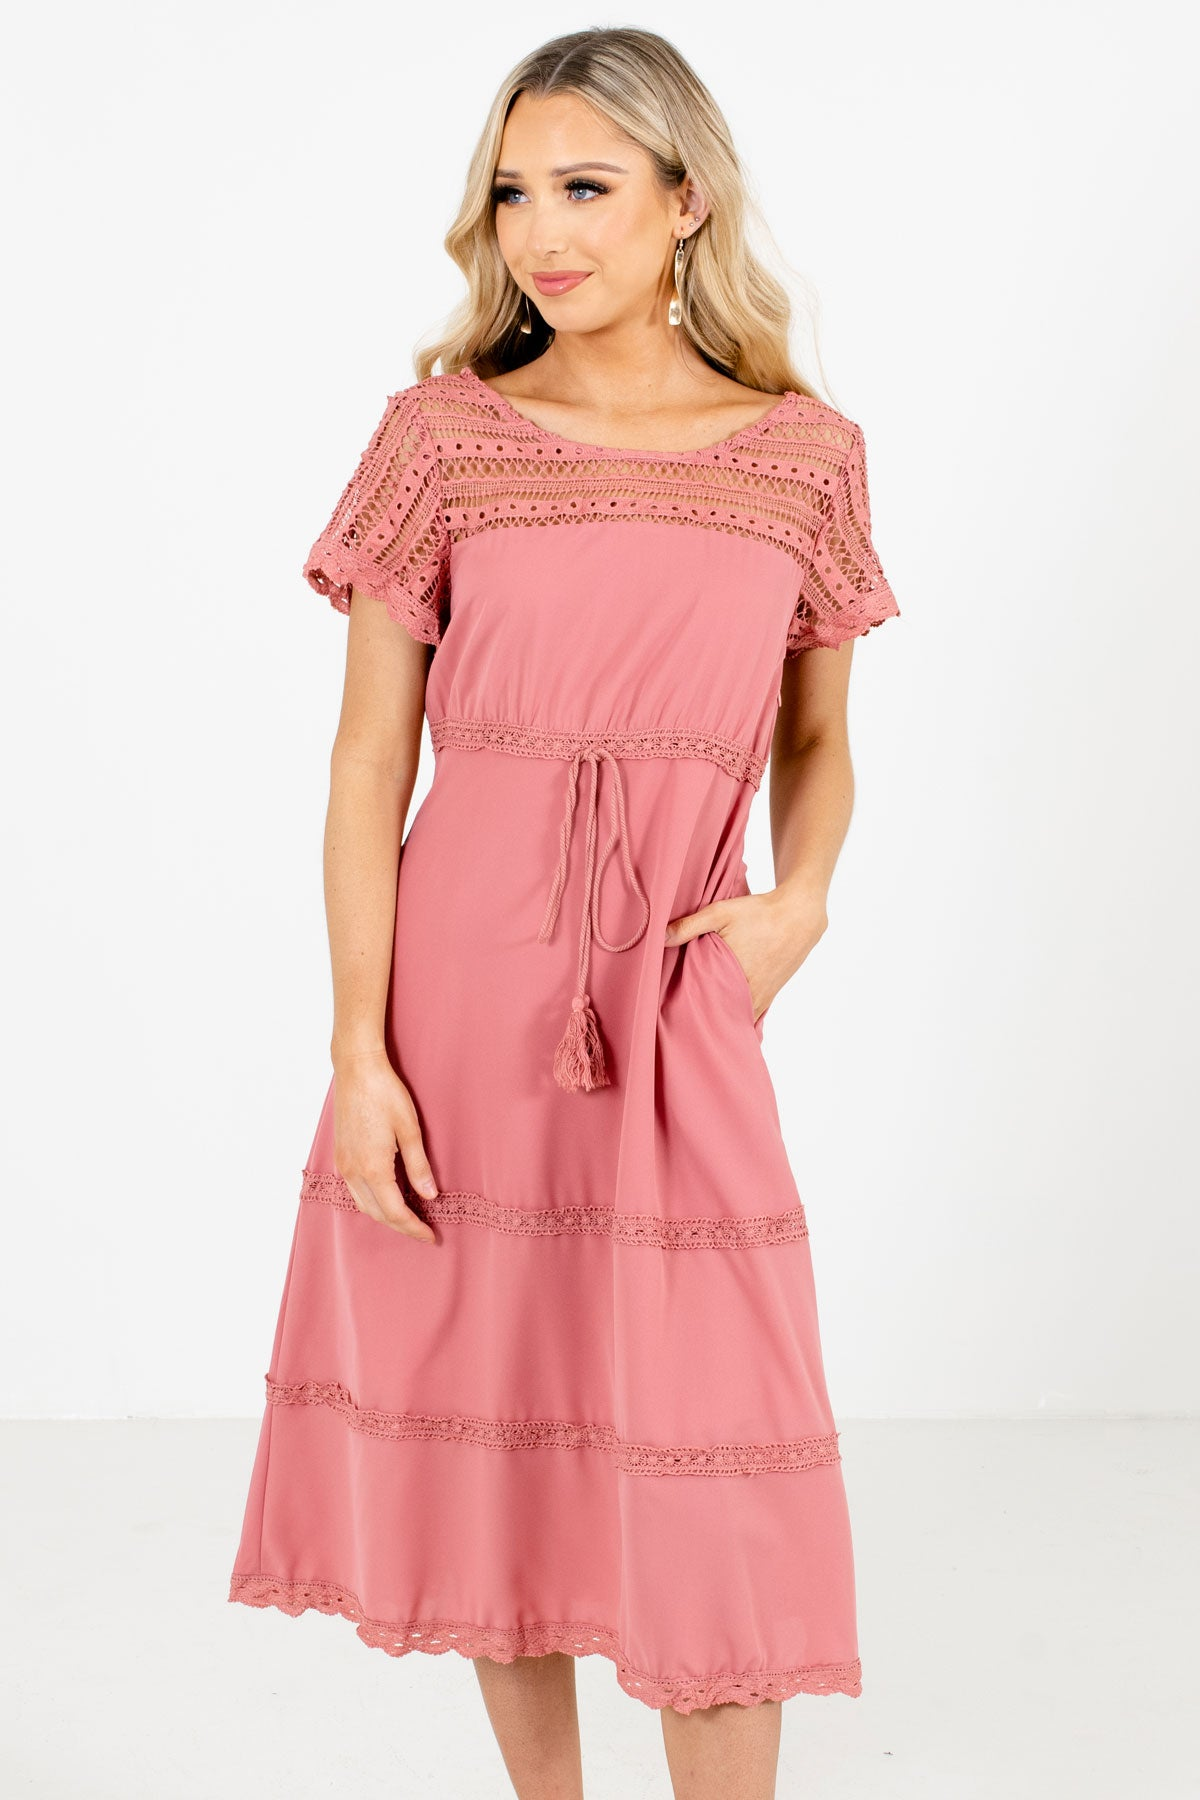 Pink Semi-Sheer Crochet Detailed Boutique Midi Dresses for Women